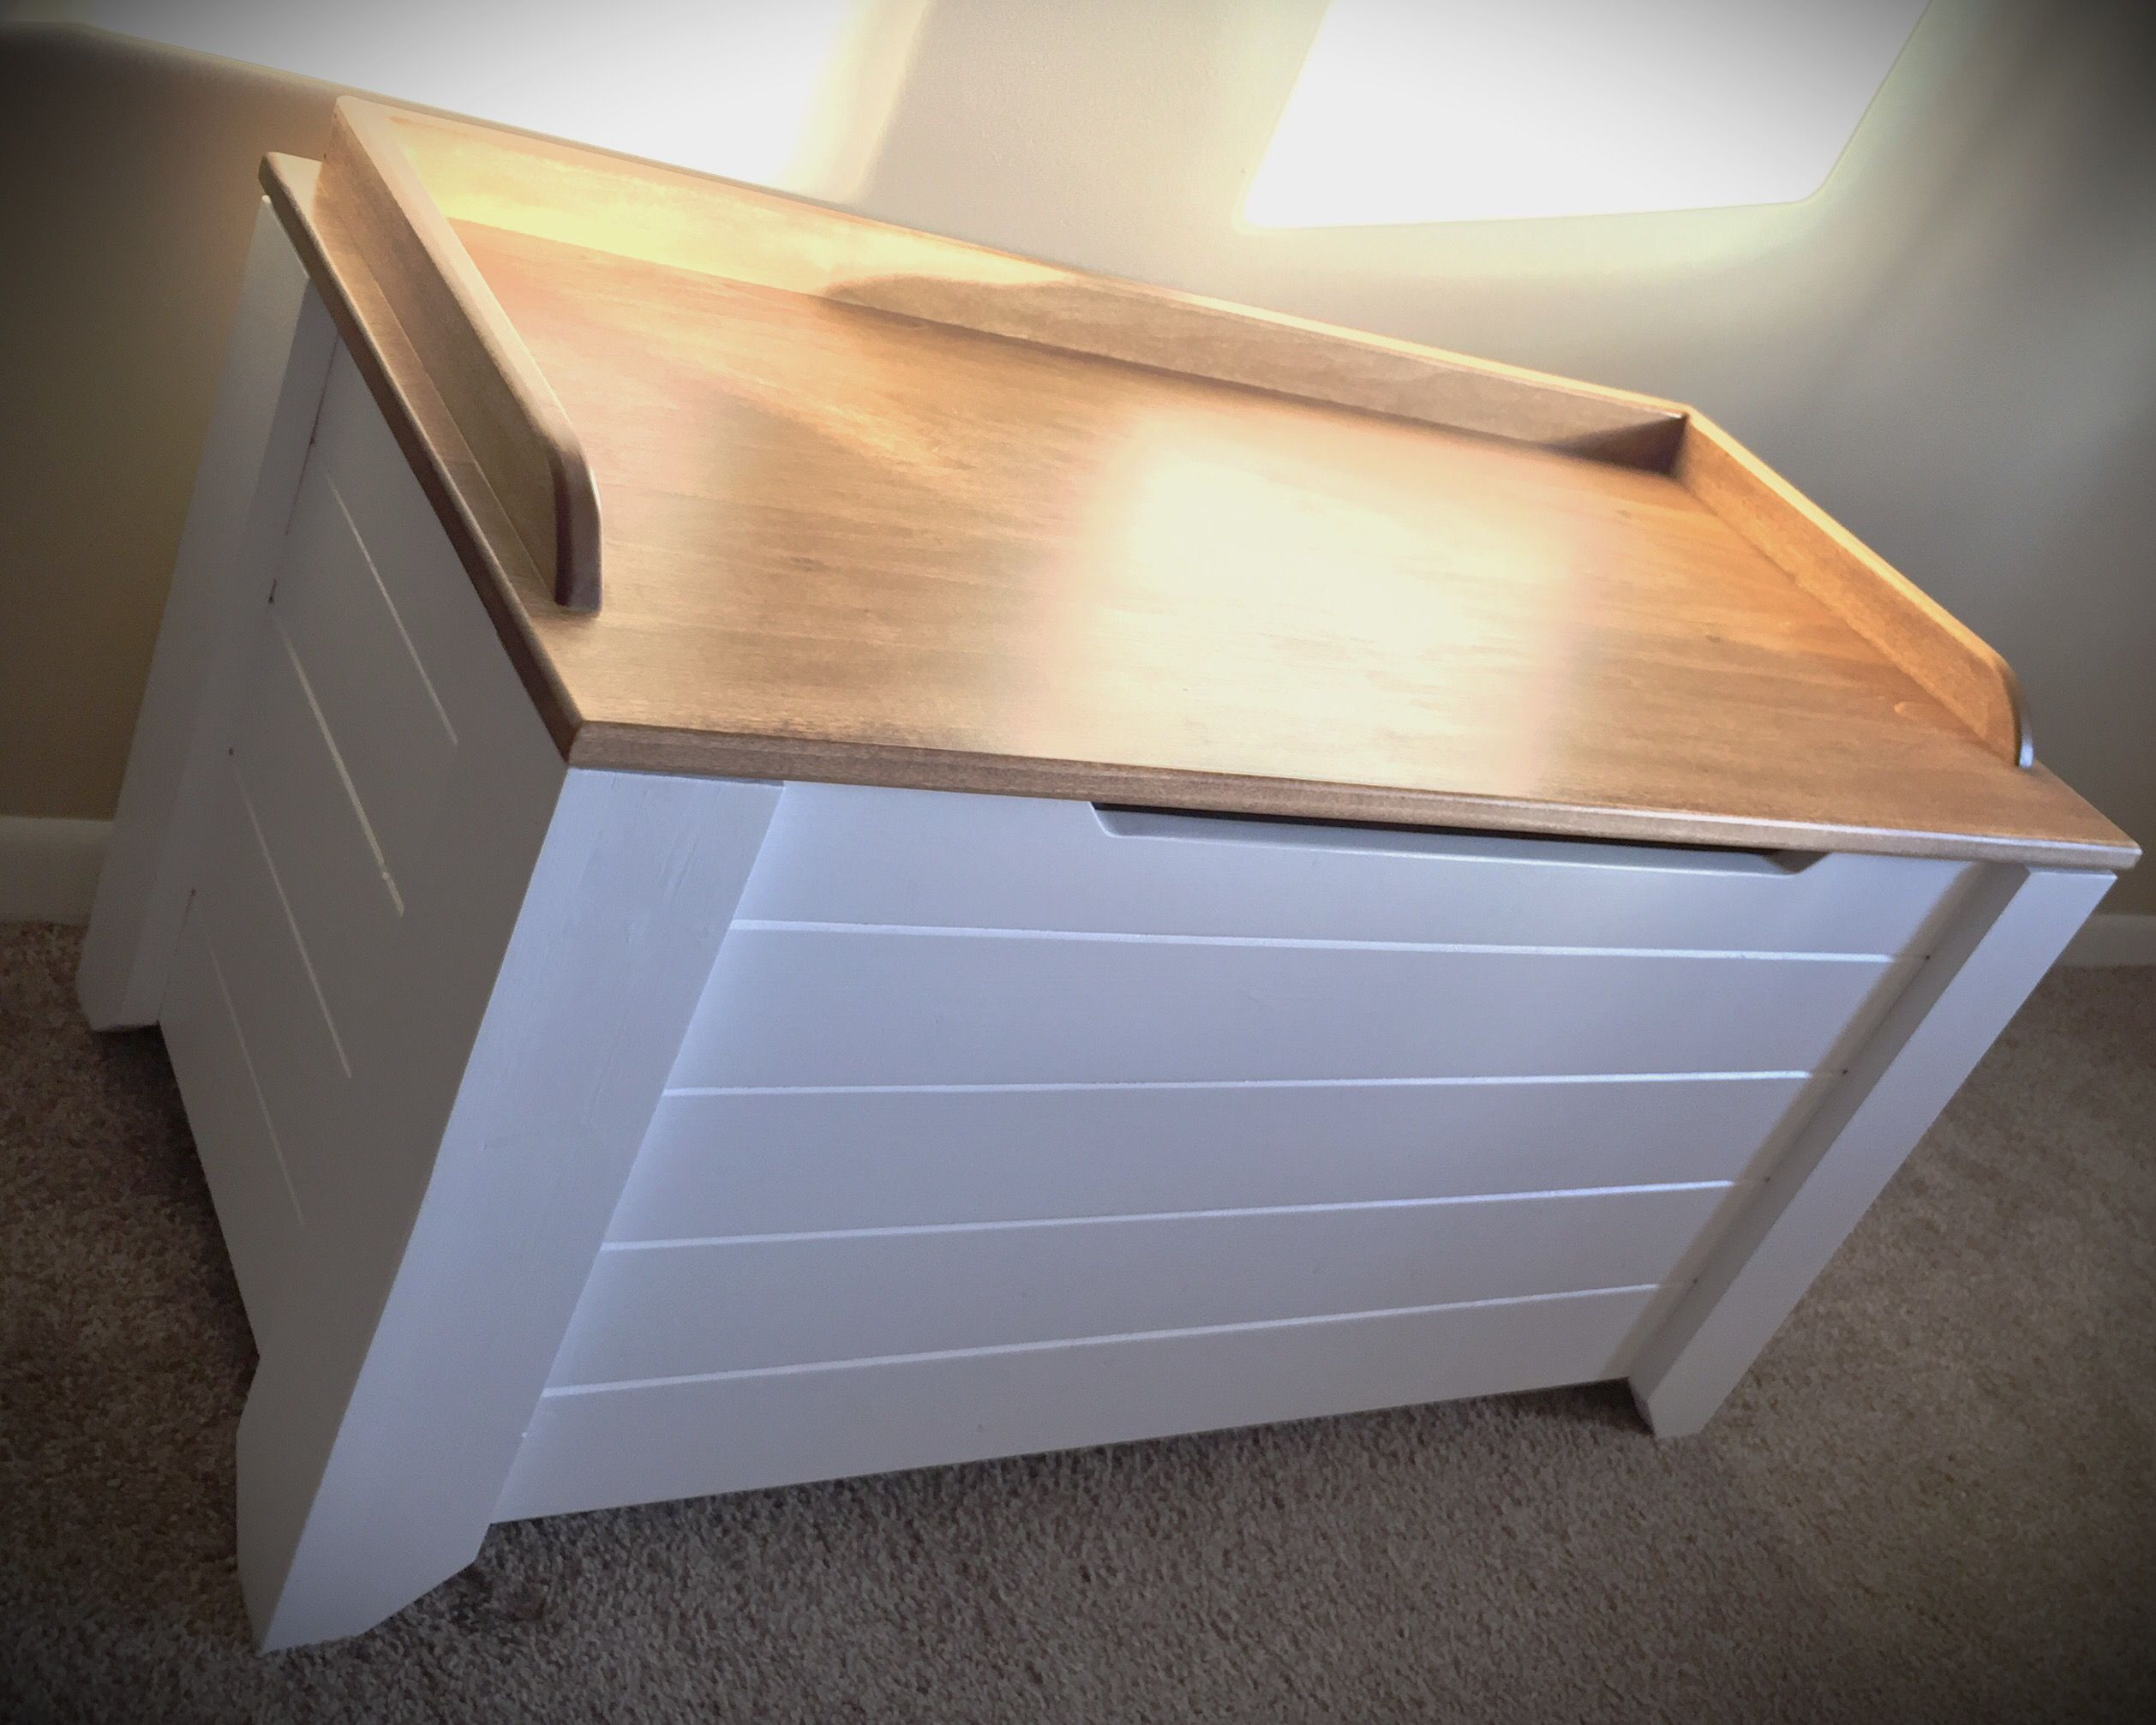 Farmhouse Style Toy Box / Blanket Chest - DIY Projects ...